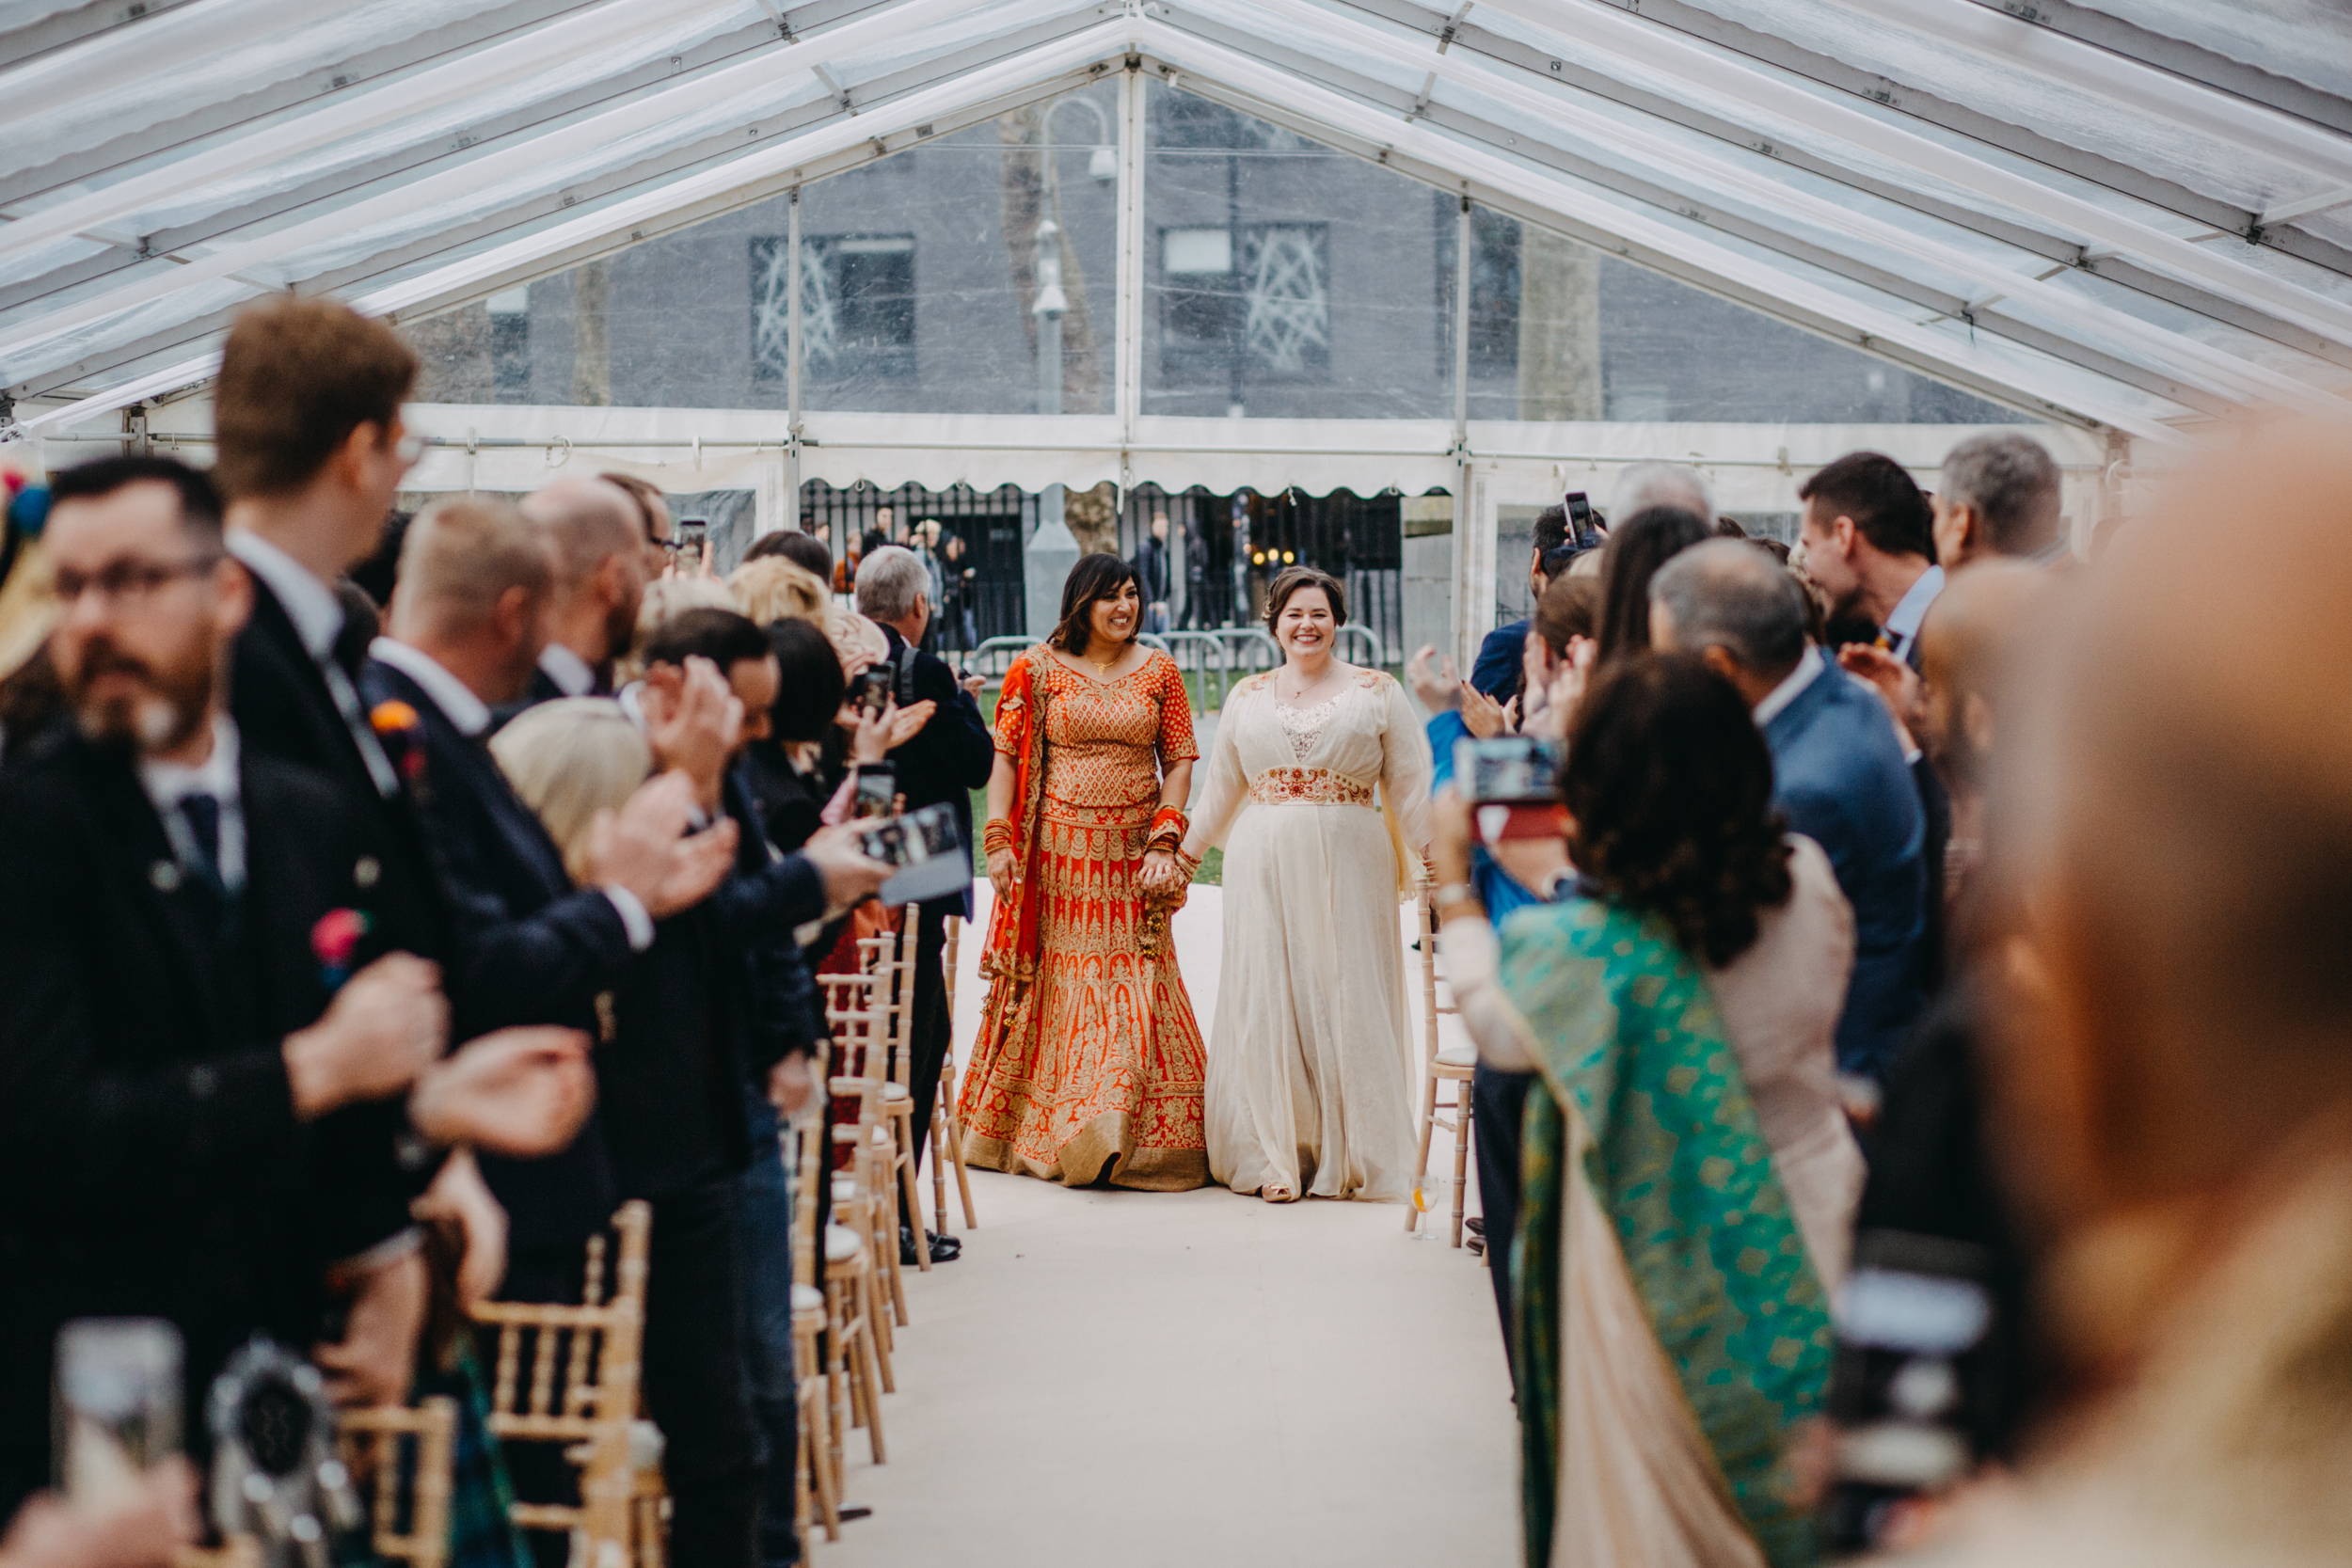 Kirsty and Reshma danced together up the aisle to Ru Paul Cover Girl. Amazing start to their ceremony!   Image by Lex Fleming